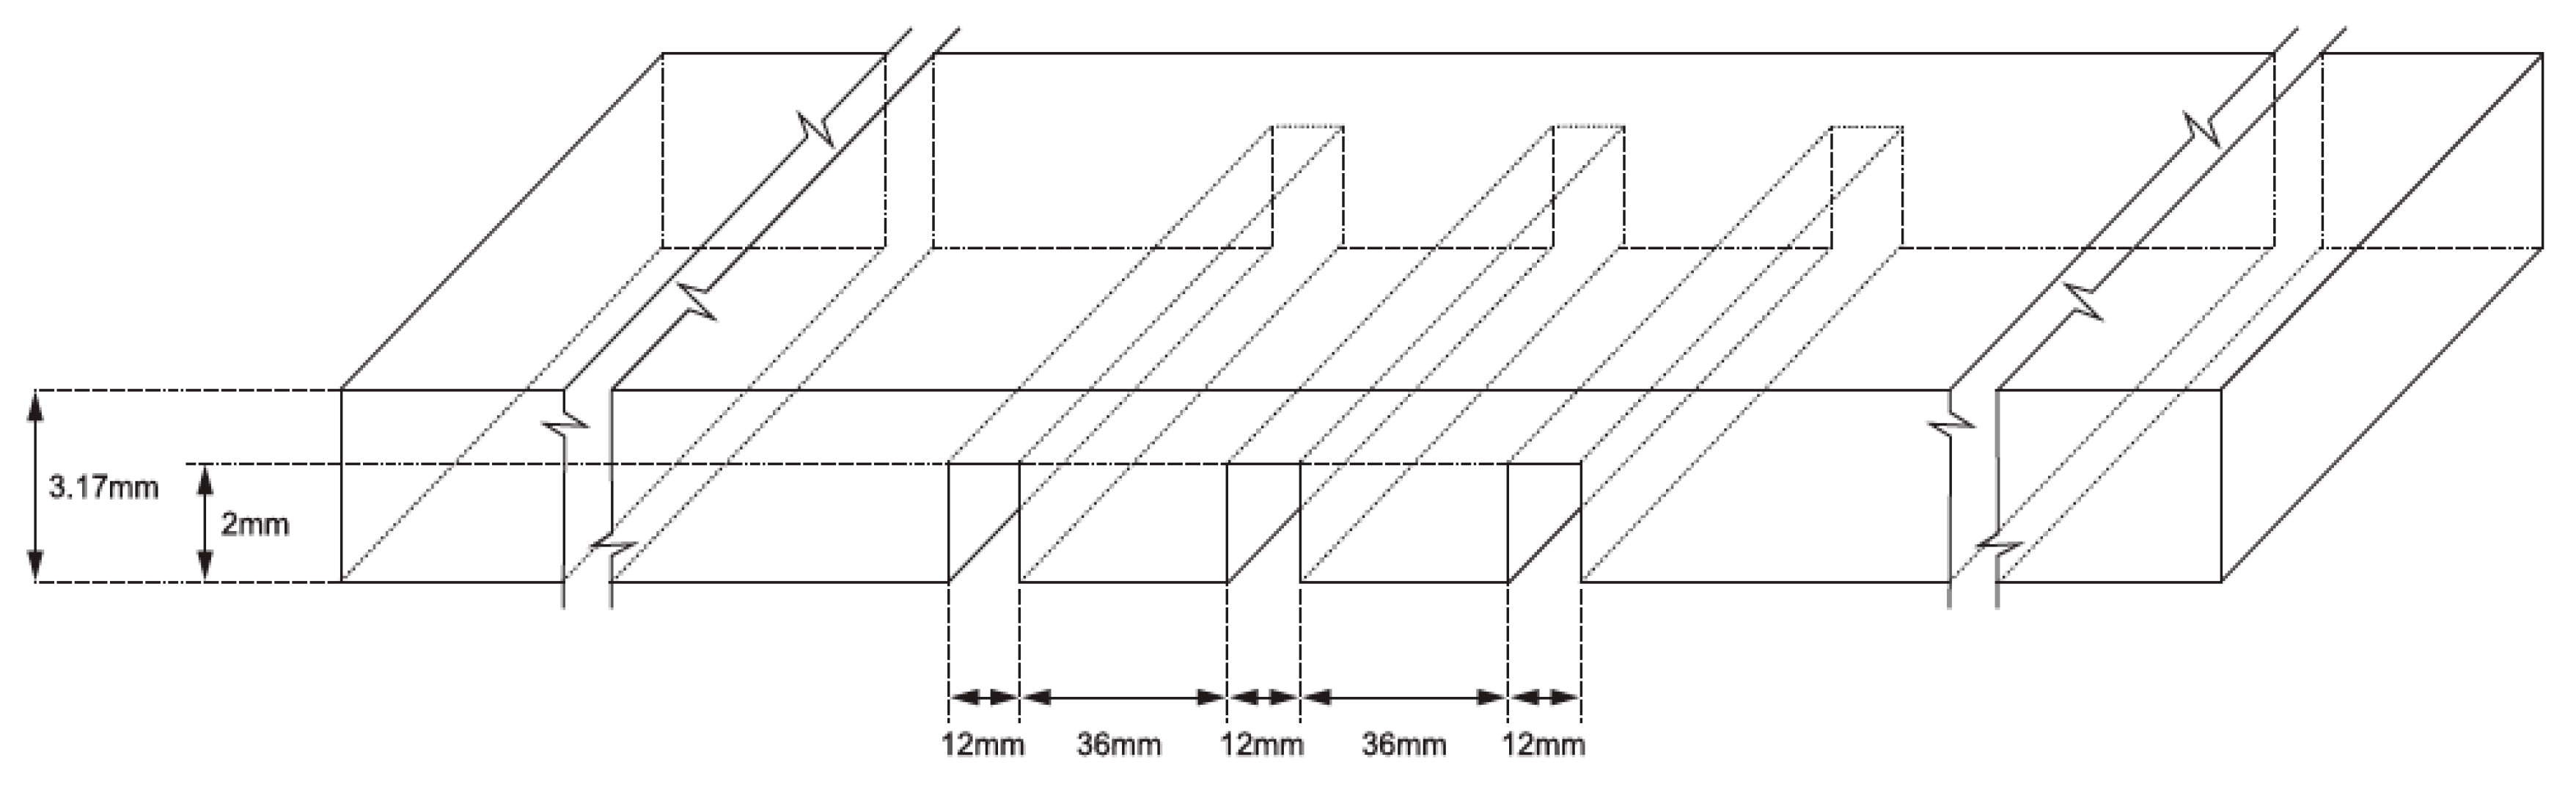 Sensors Free Full Text Discontinuity Detection In The Shield Arc Welding Process Diagram No